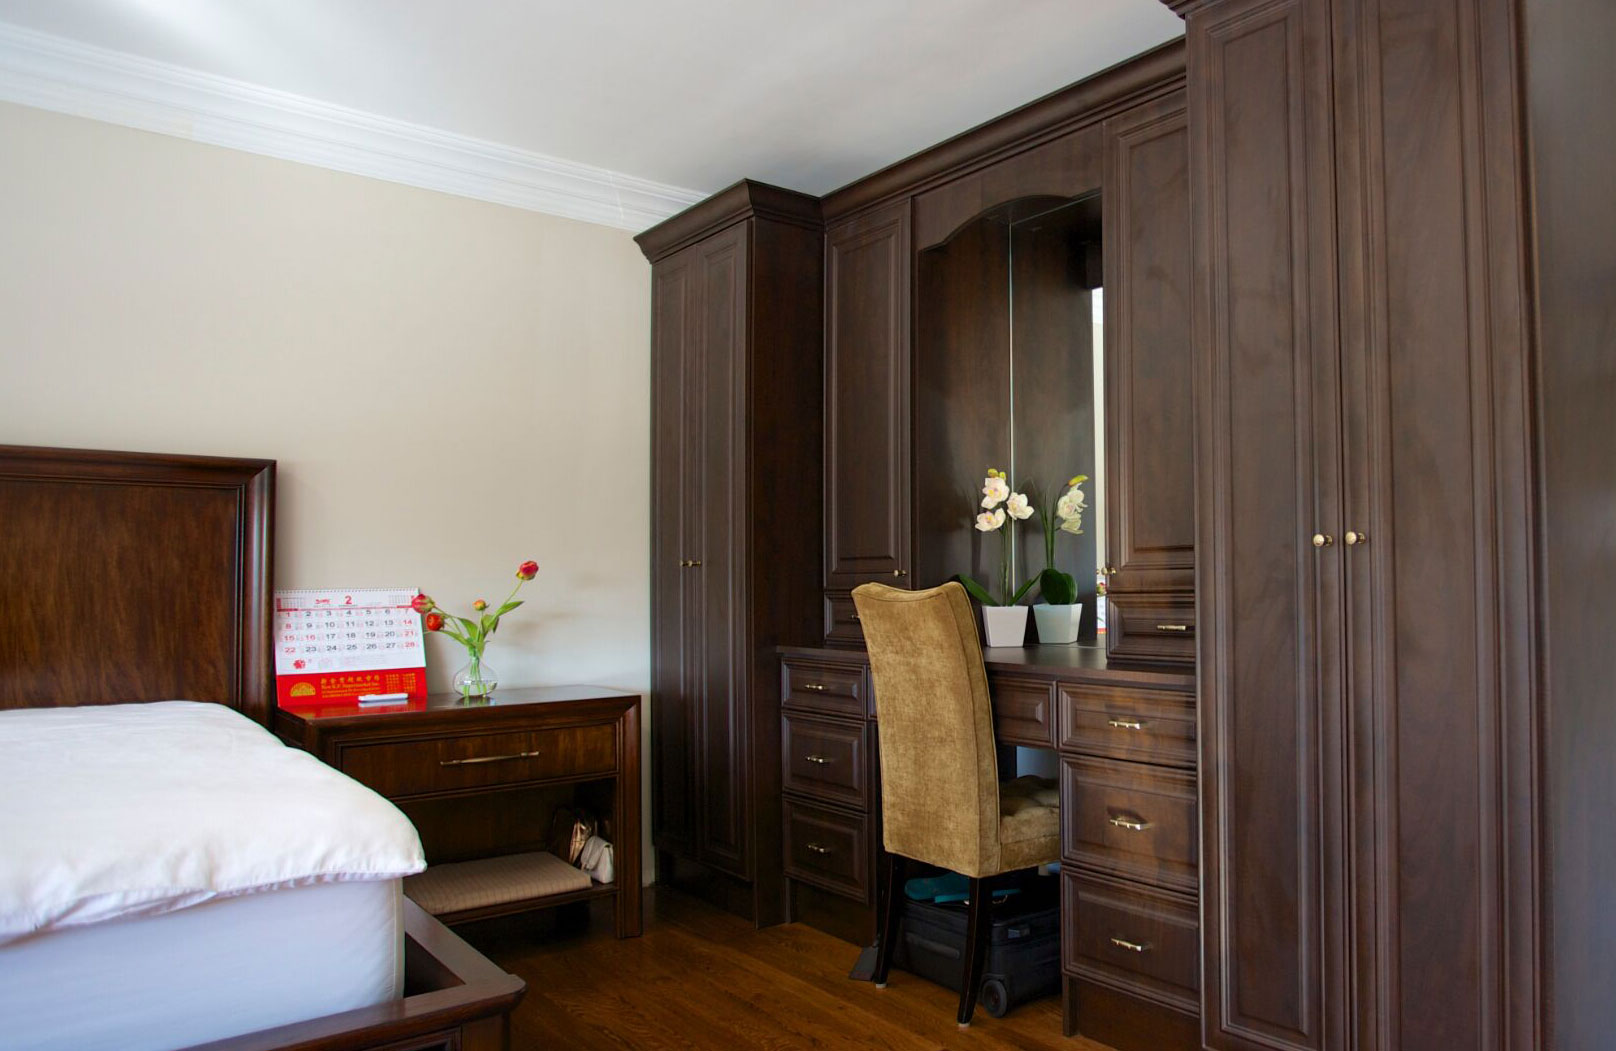 Innovative Closet Designs Bedroom Solution - Chocolate Pear Built in With Vanity Station, Raised Panel Drawers, Full Height Doors, Crown Moulding